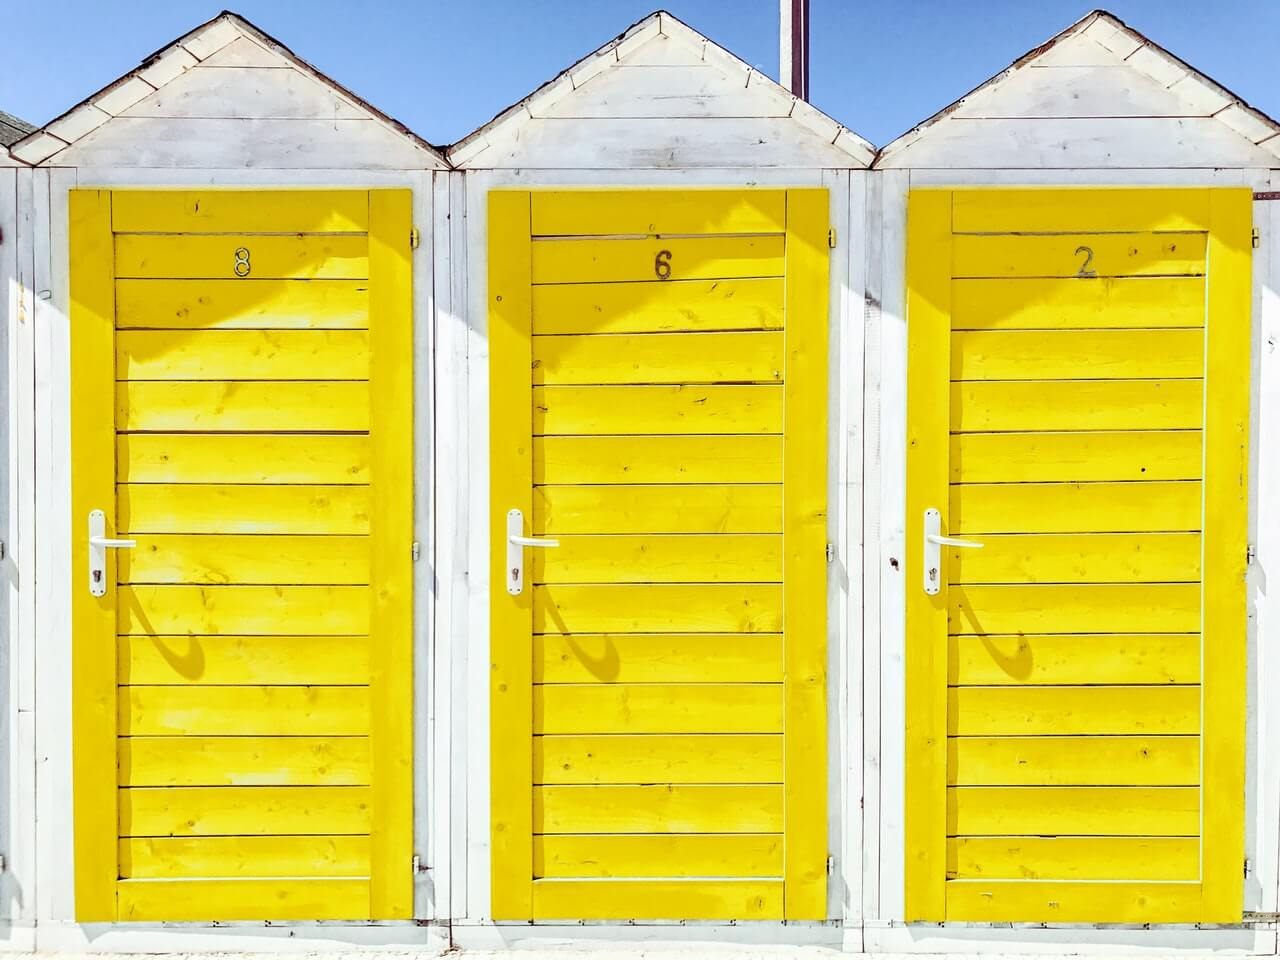 Three wooden doors painted in yellow. Each doors present different NetSuite partner.